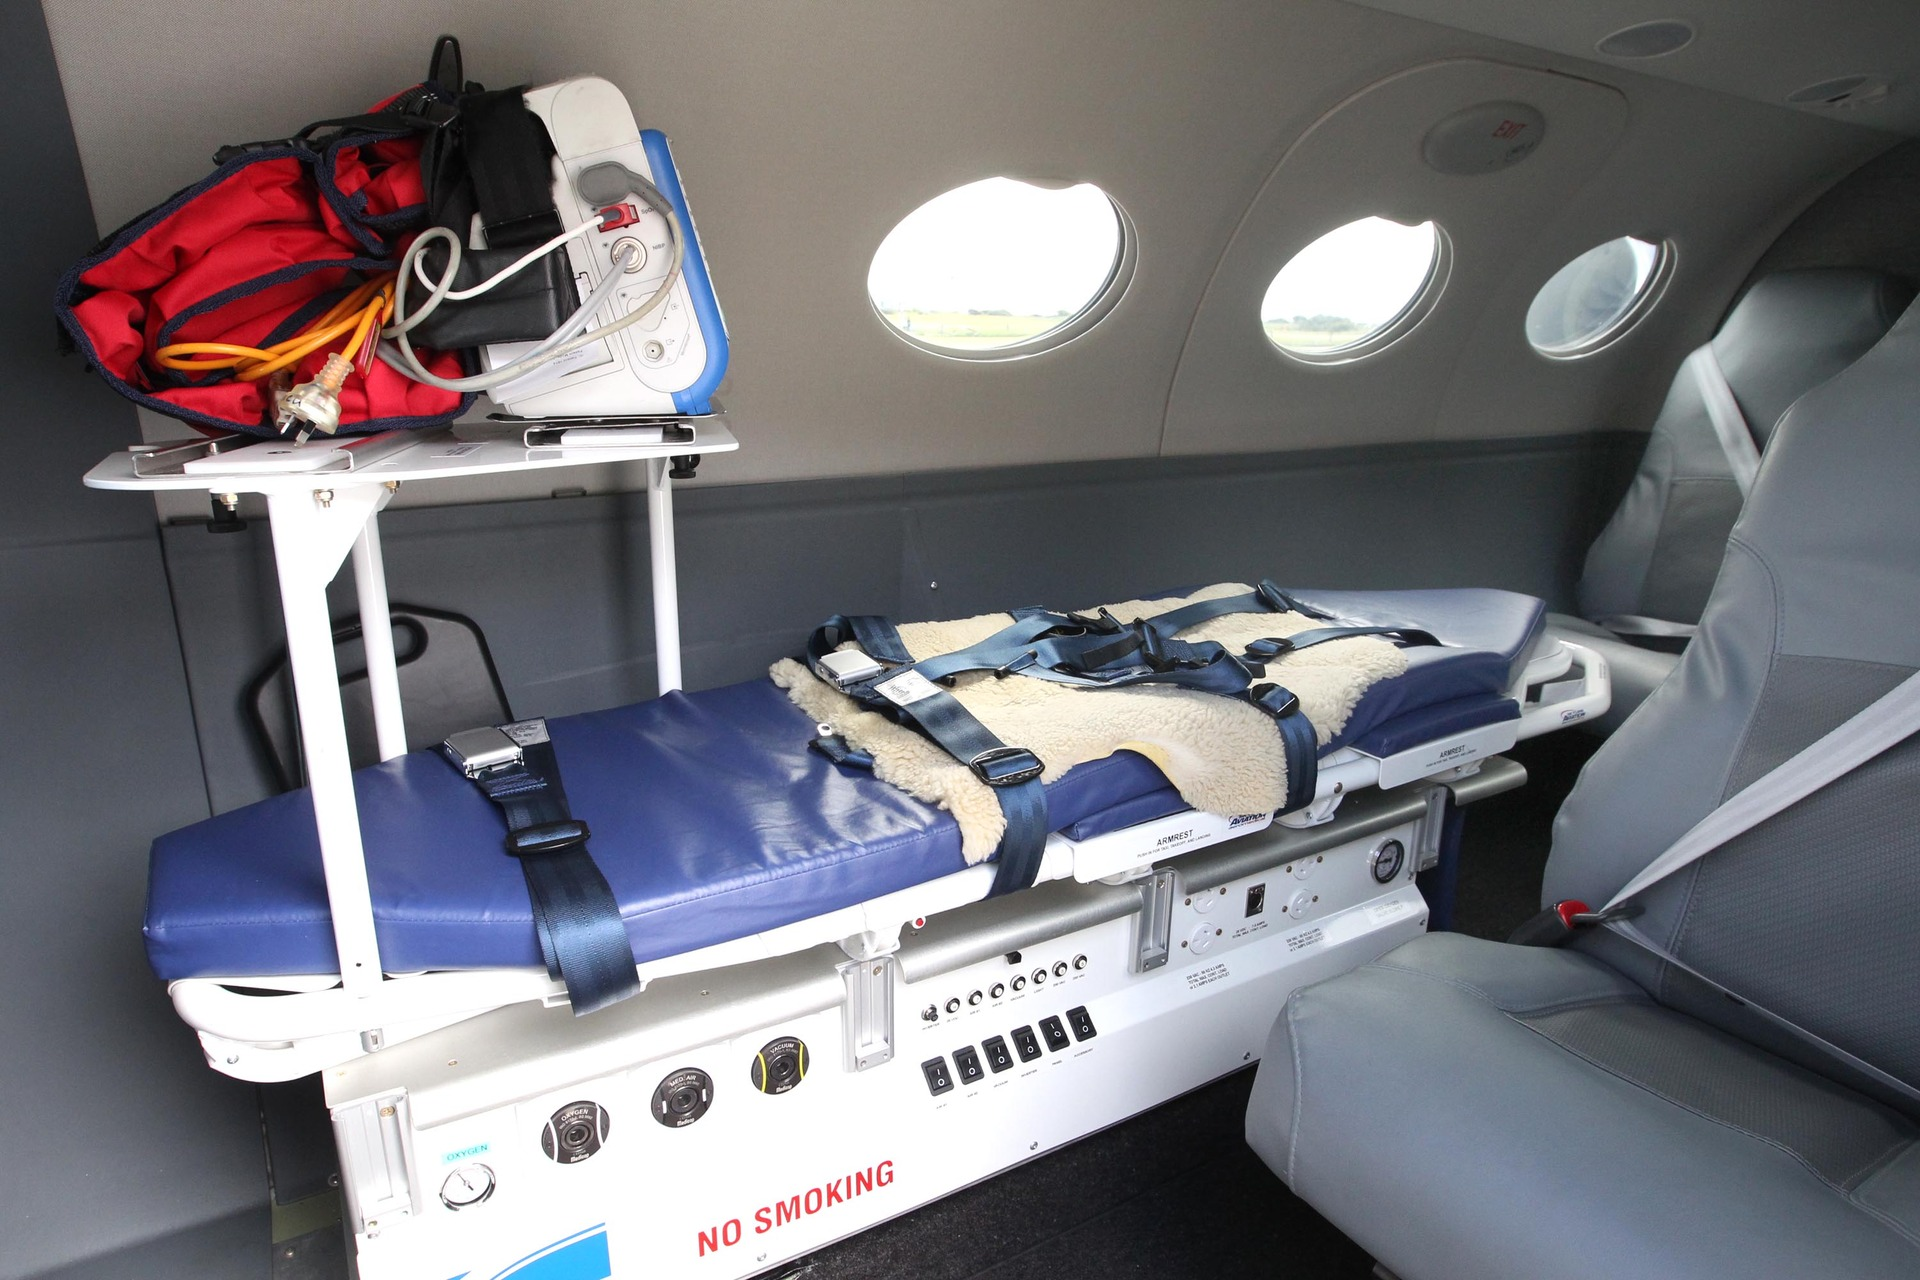 Charges laid after patient fell from stretcher during air ambulance transfer in Hawke's Bay